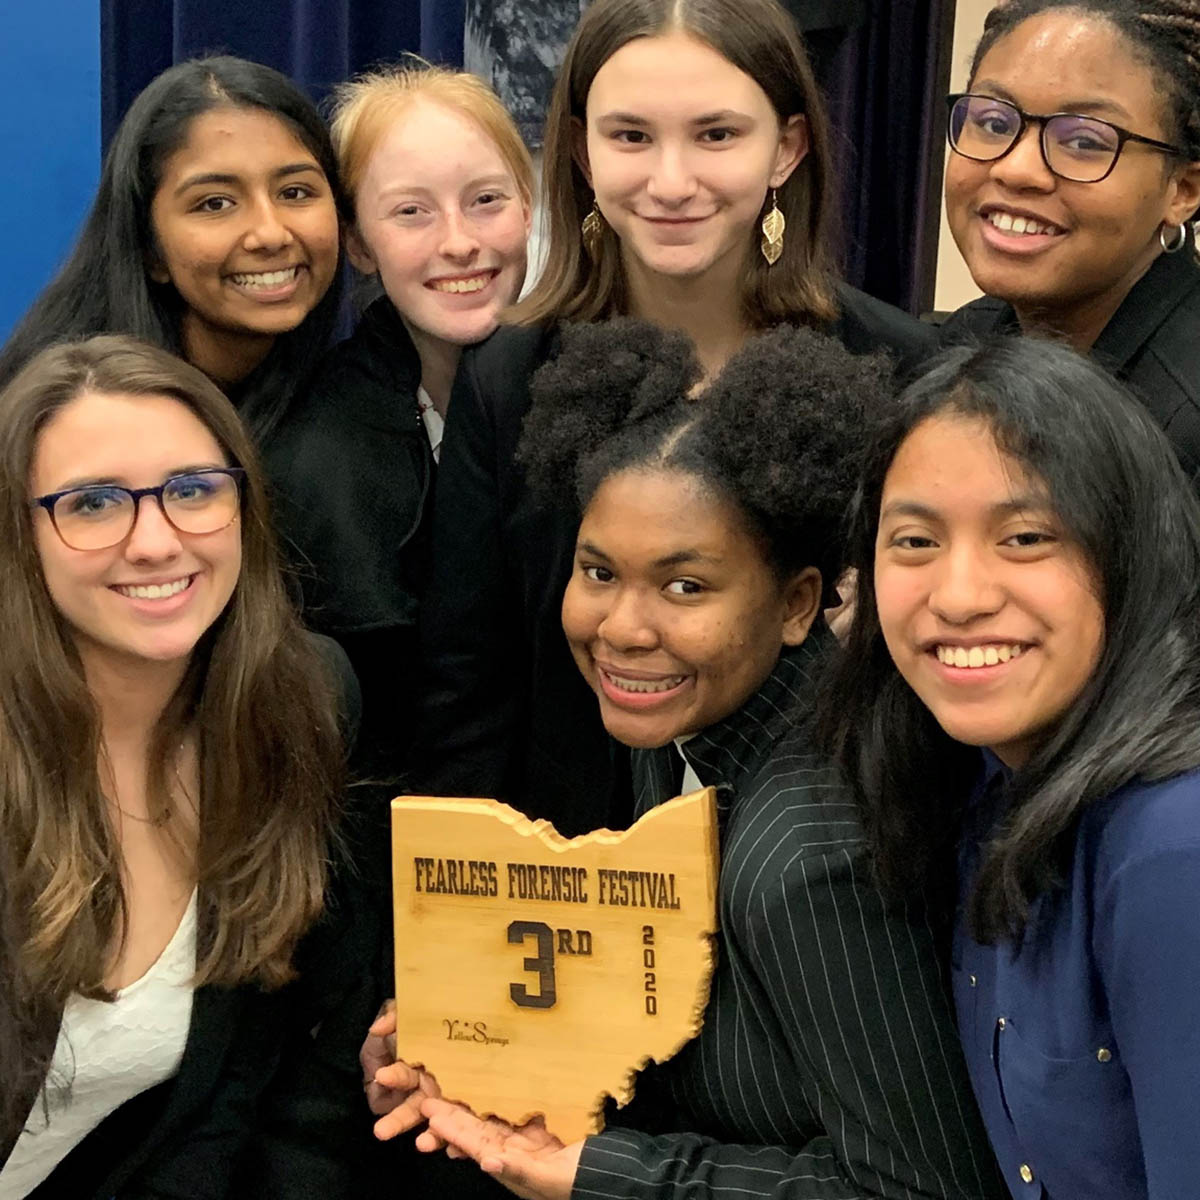 Stuednt posing and smiling with an award plaque.